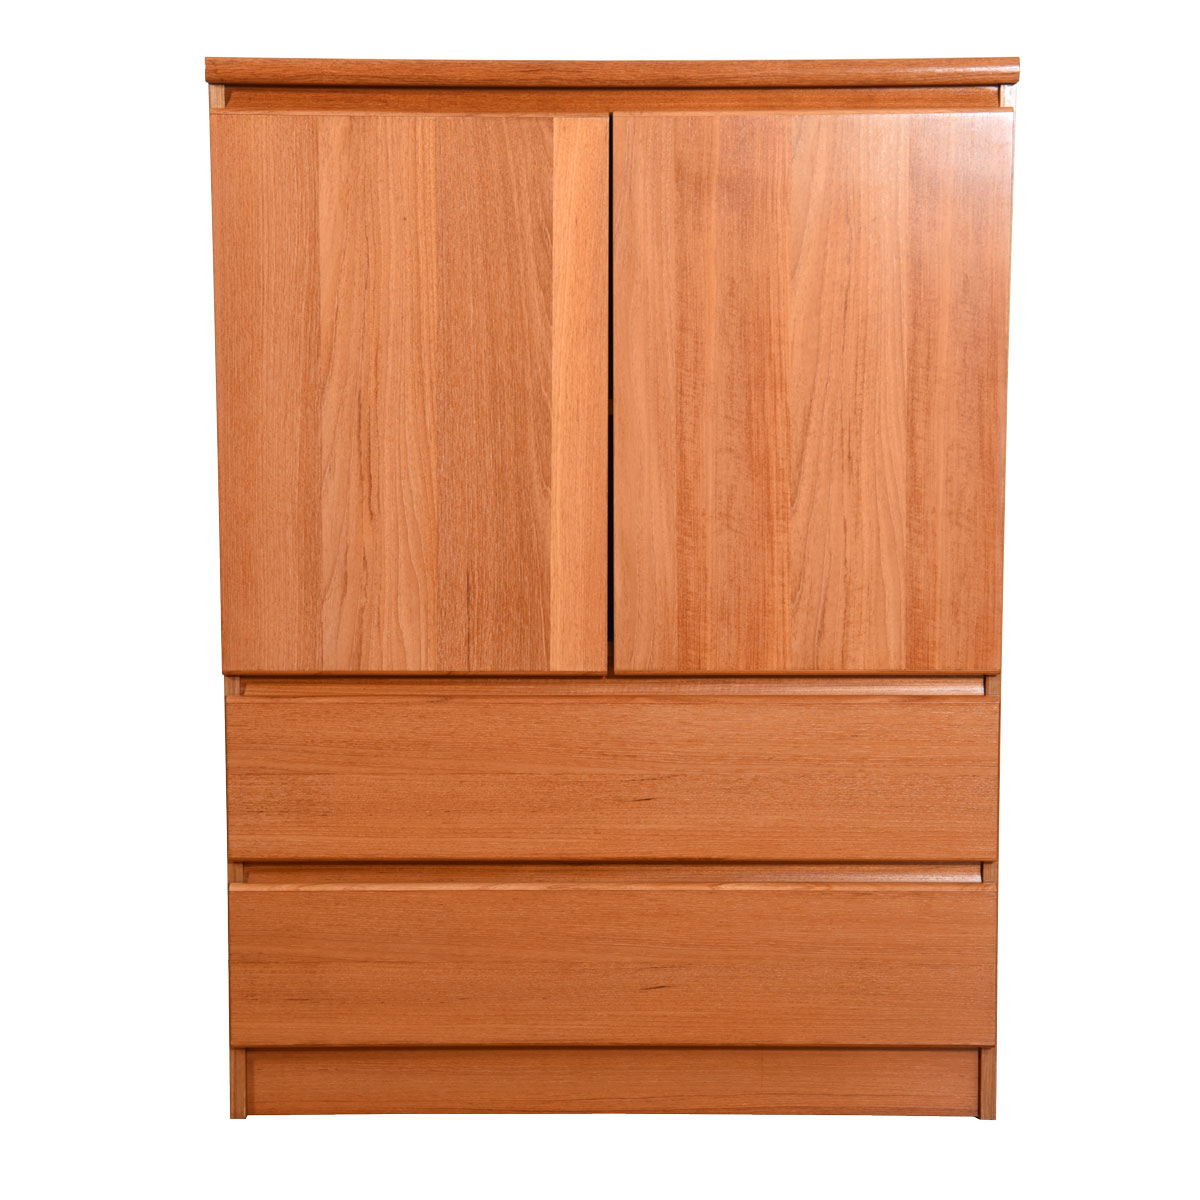 MCM Gent's Chest Dresser / Storage Cabinet